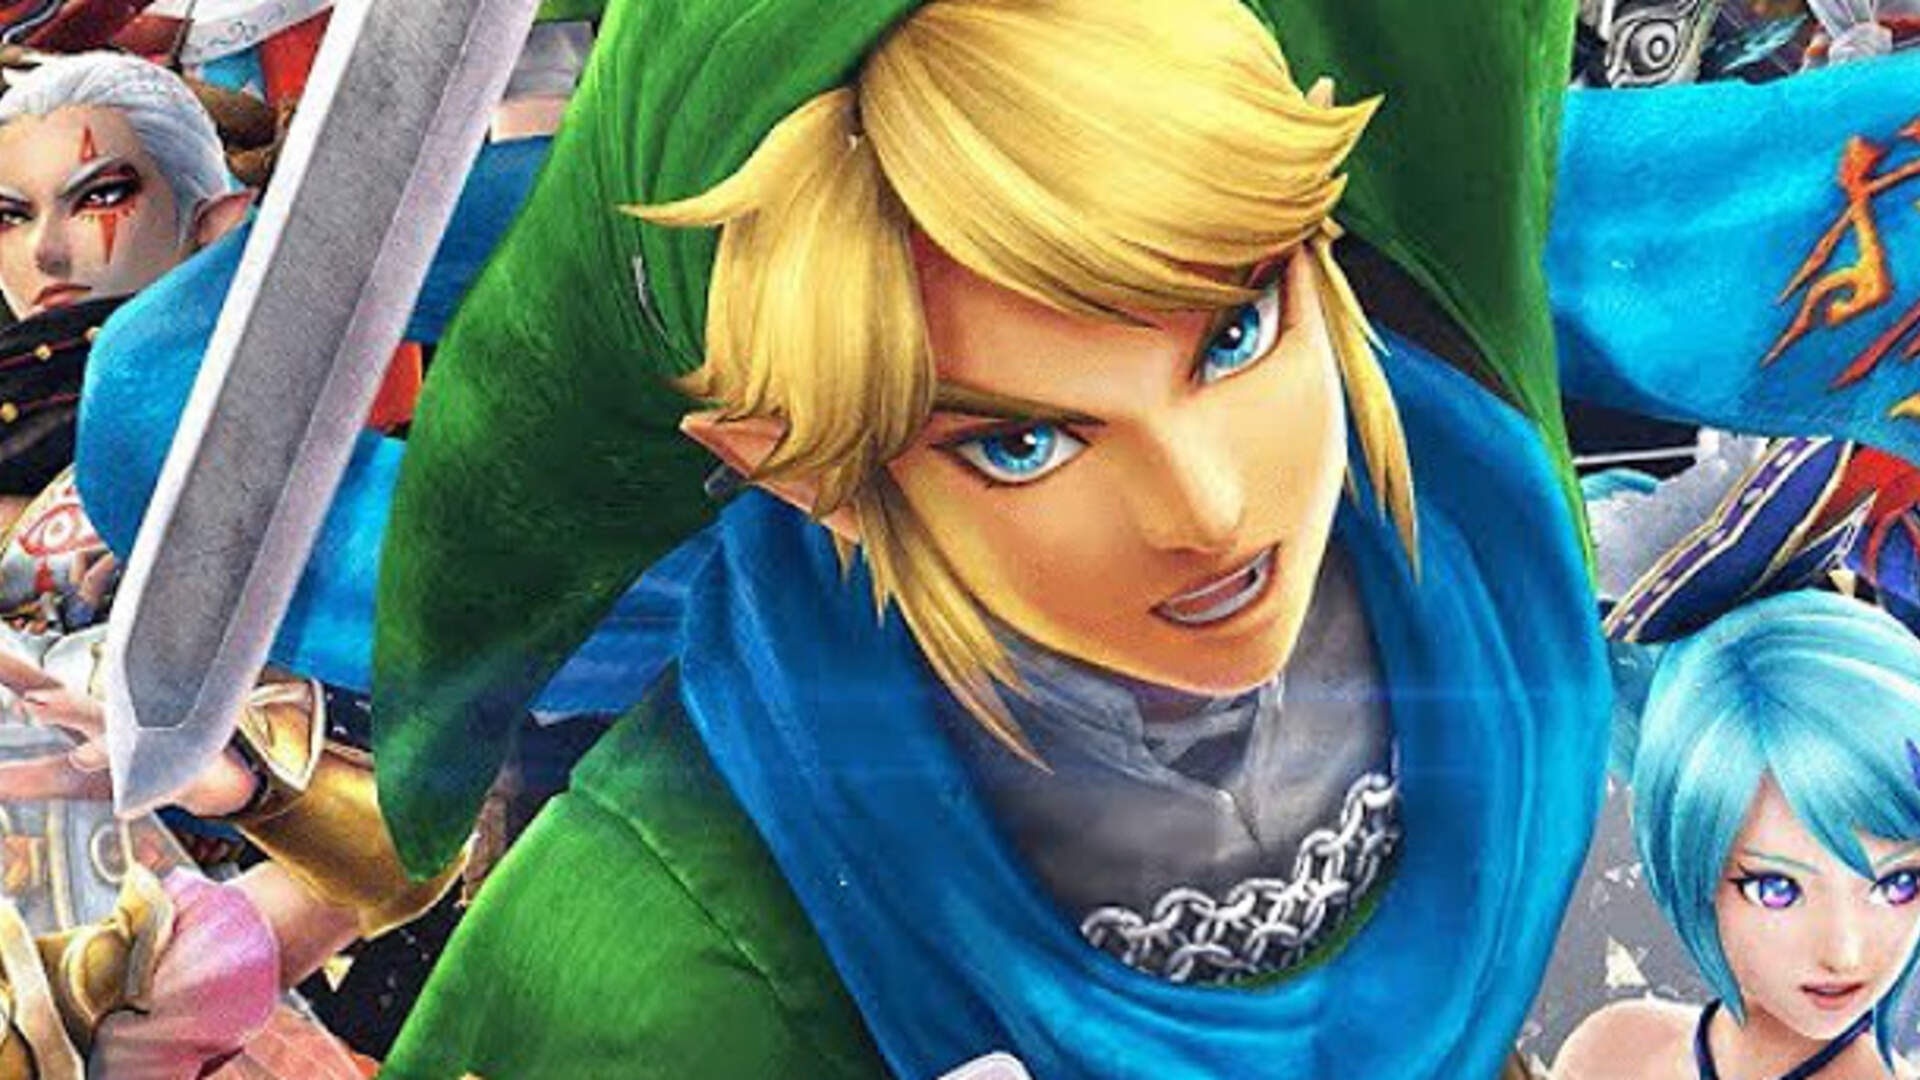 Hyrule Warriors Comes to Switch With Definitive Edition